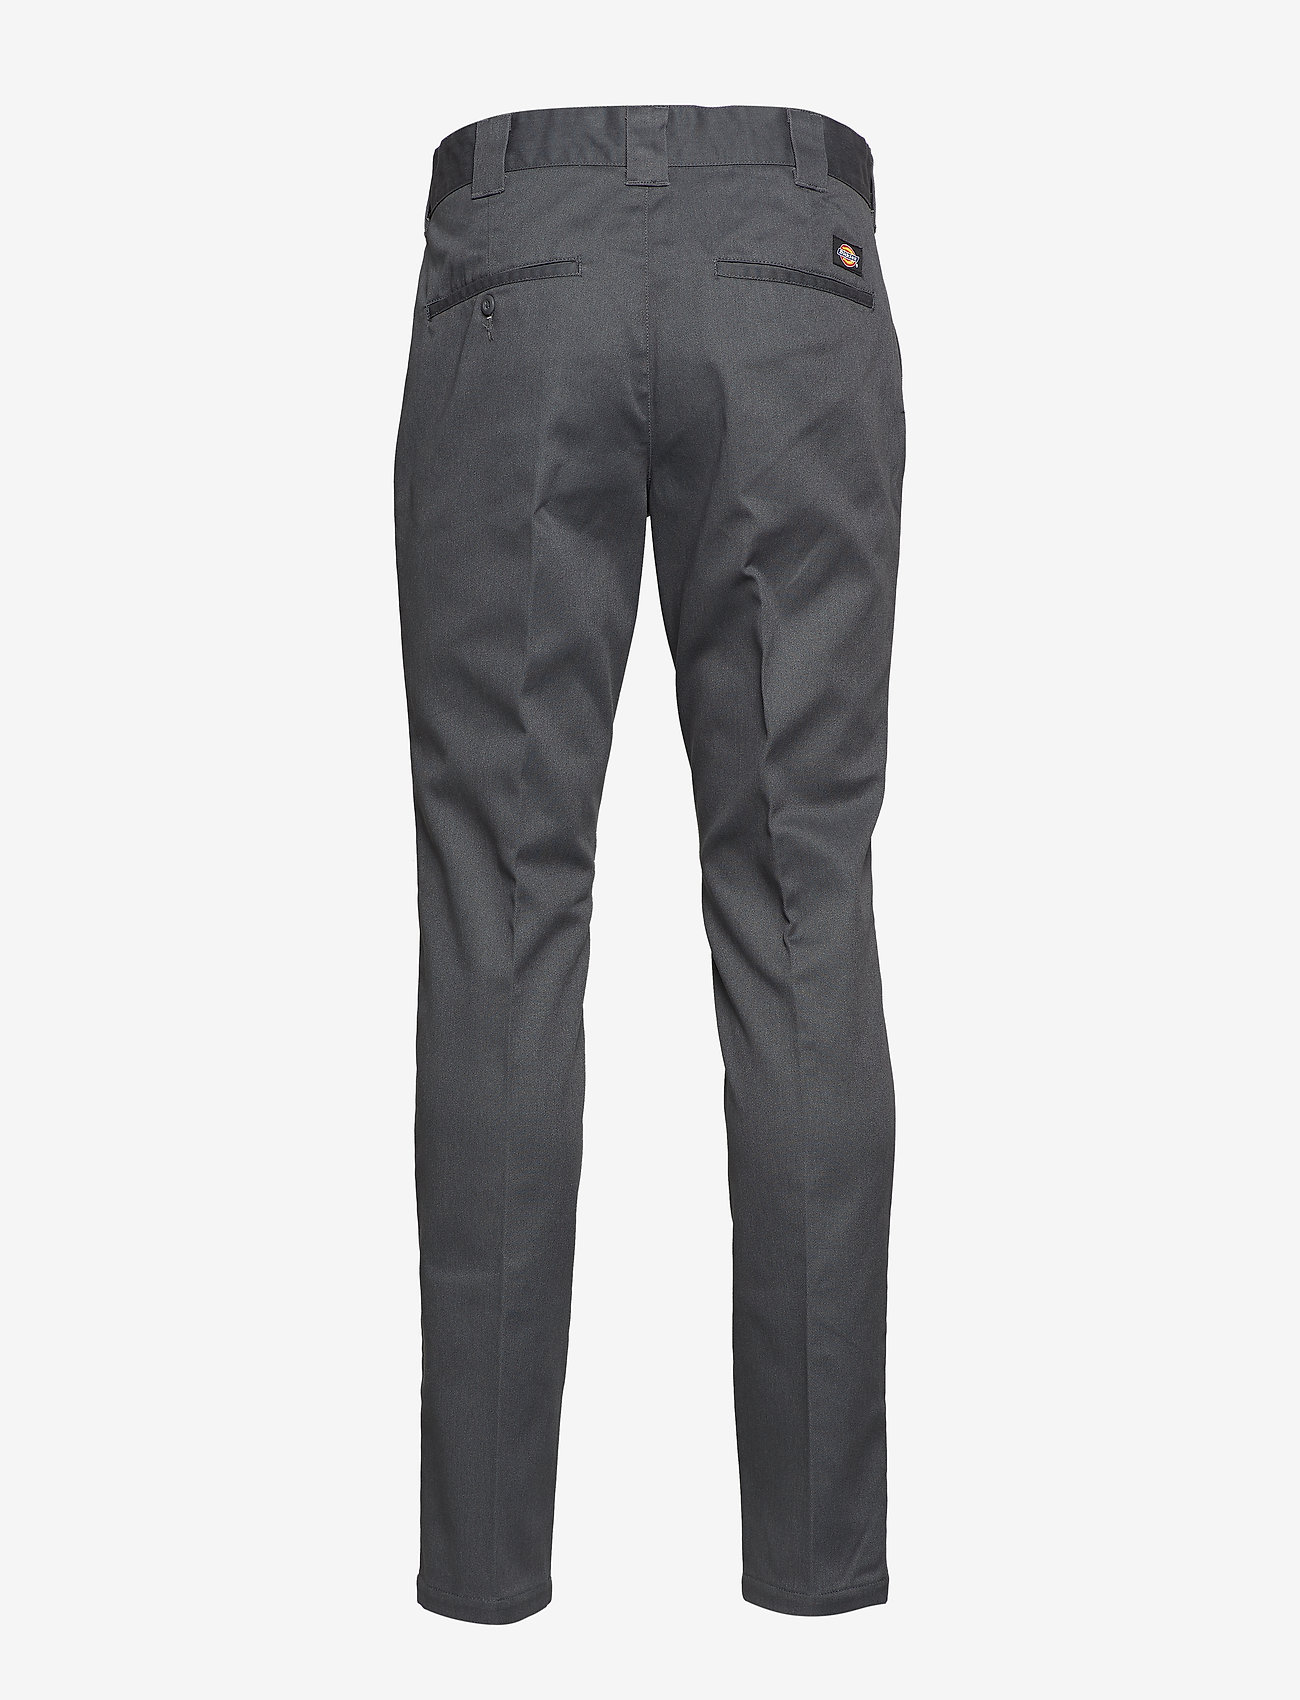 Dickies SLIM FIT WORK PANT - Bukser CHARCOAL GREY - Menn Klær